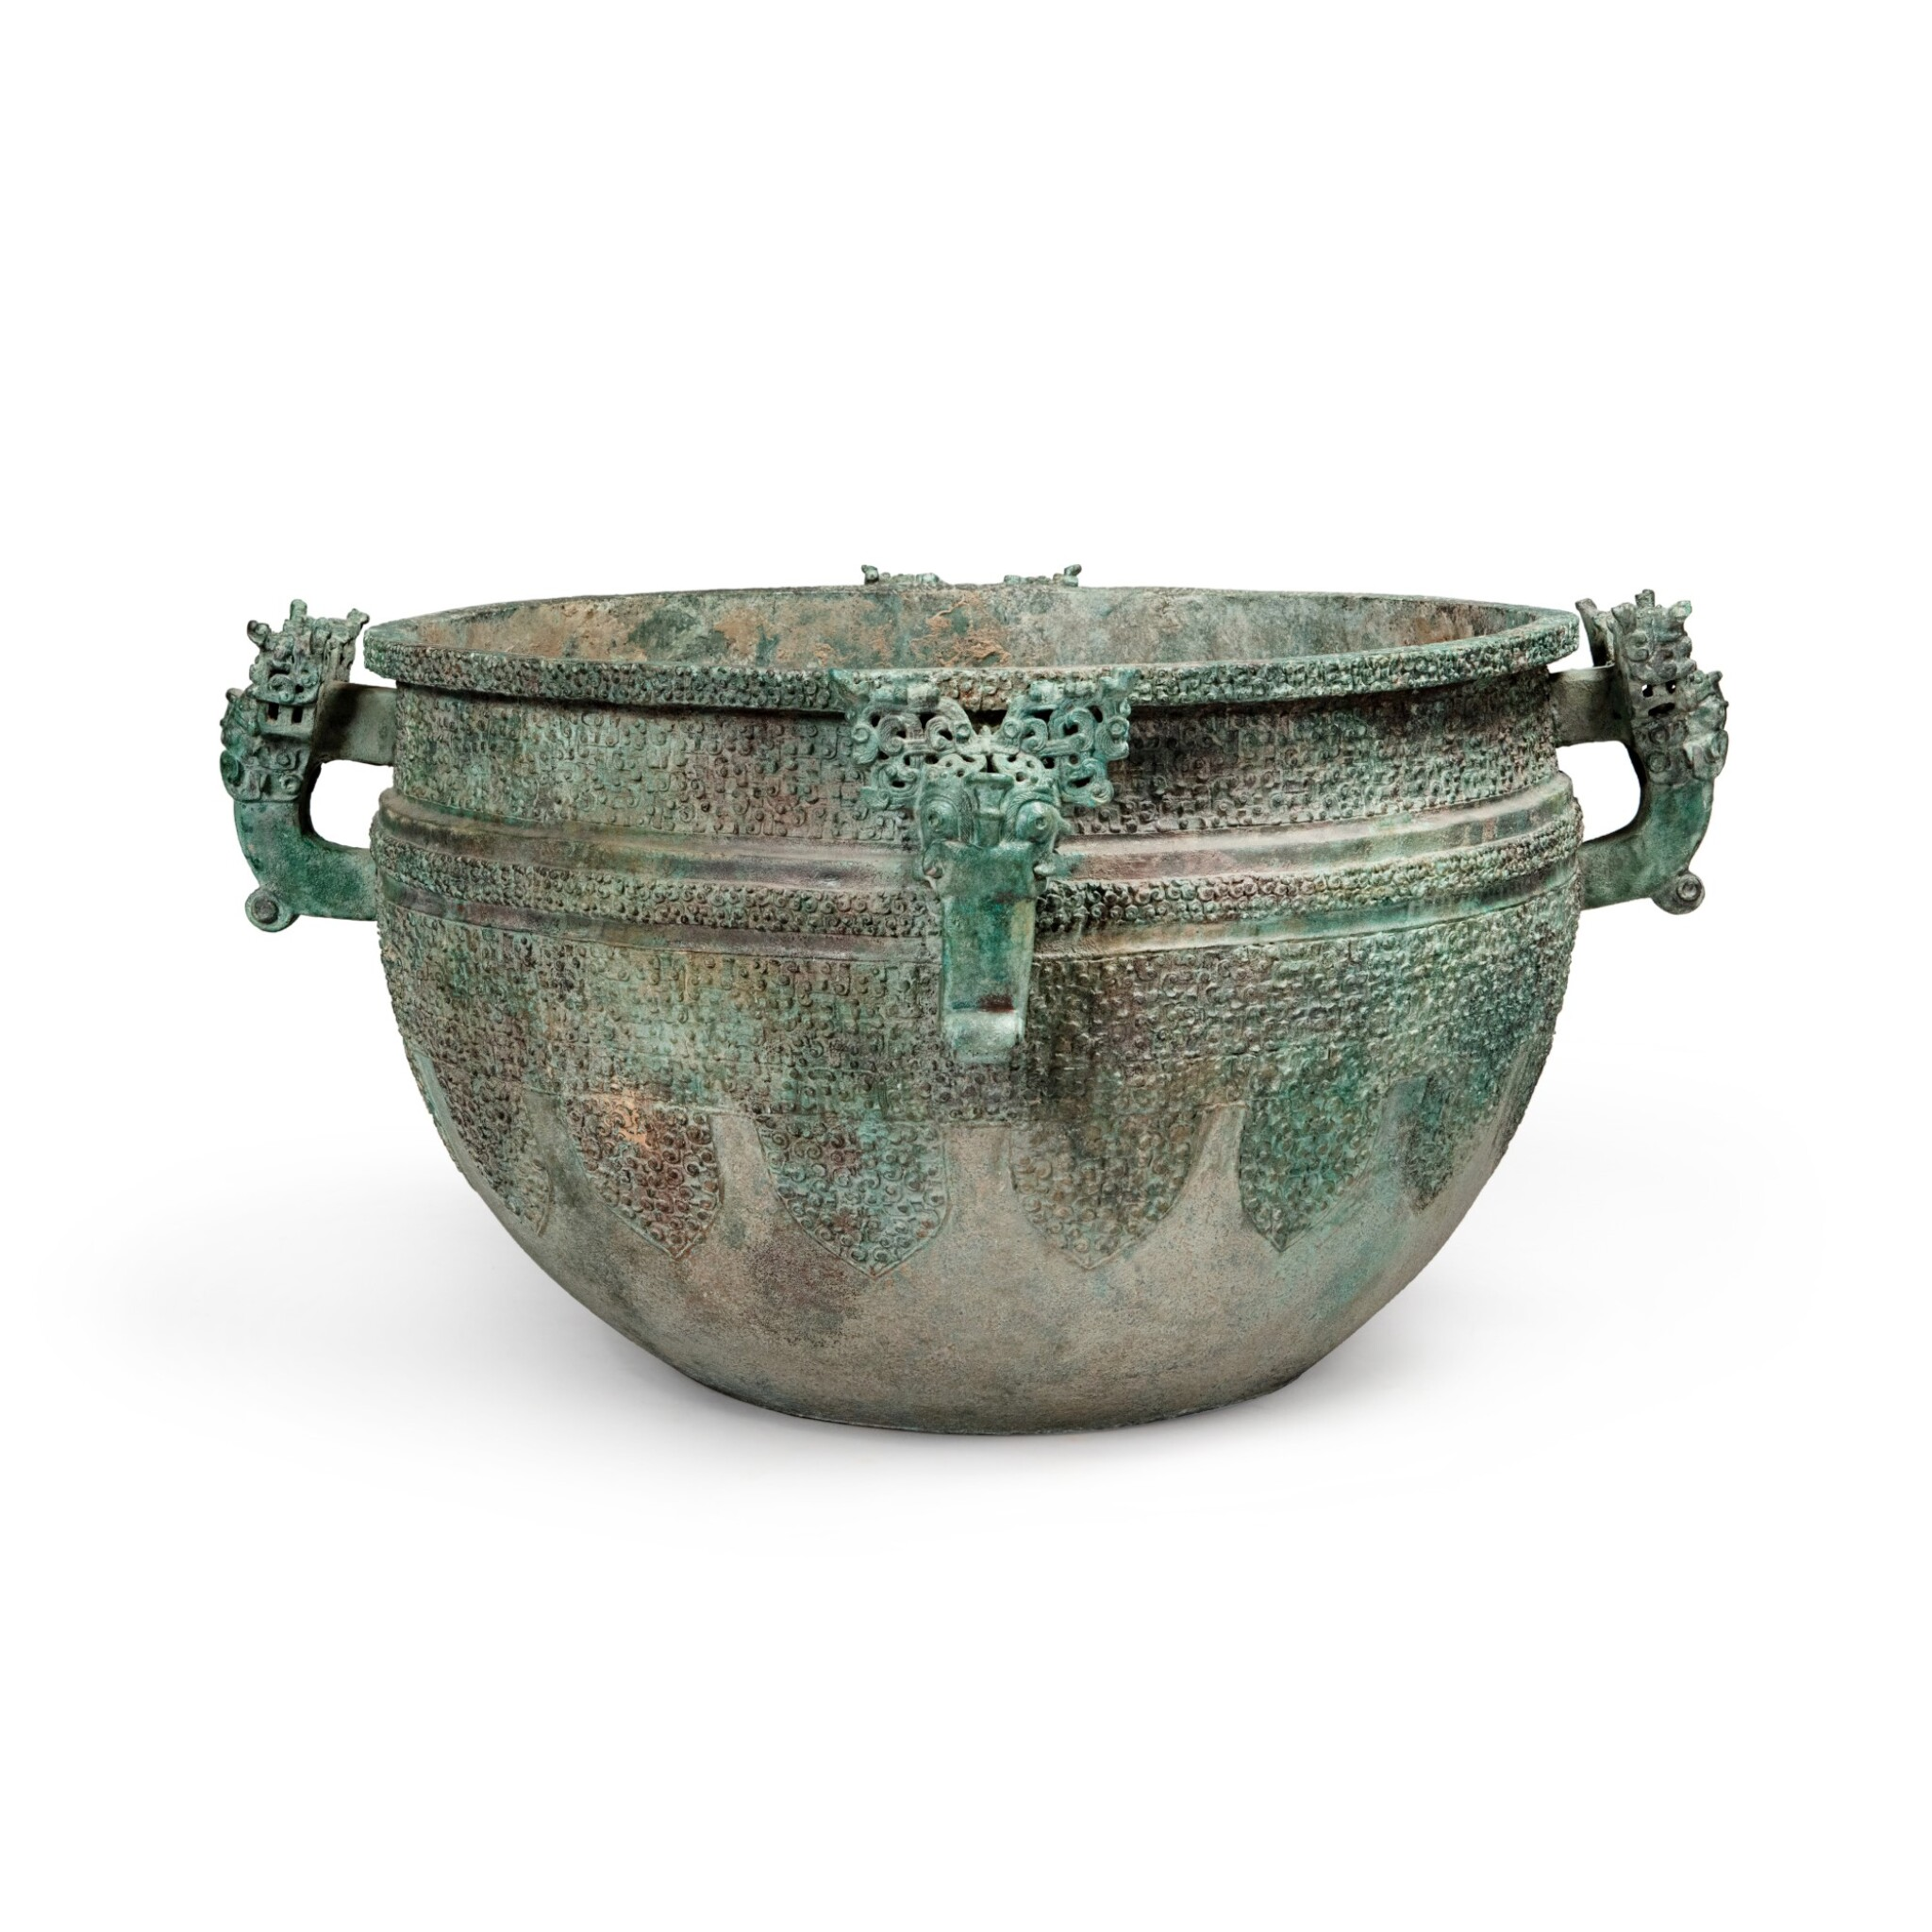 View full screen - View 1 of Lot 17. A massive archaic bronze water basin (Jian), Eastern Zhou dynasty, late Spring and Autumn period, circa 500 BC   東周 春秋末 約公元前500年 青銅變形龍紋獸首耳鑒.